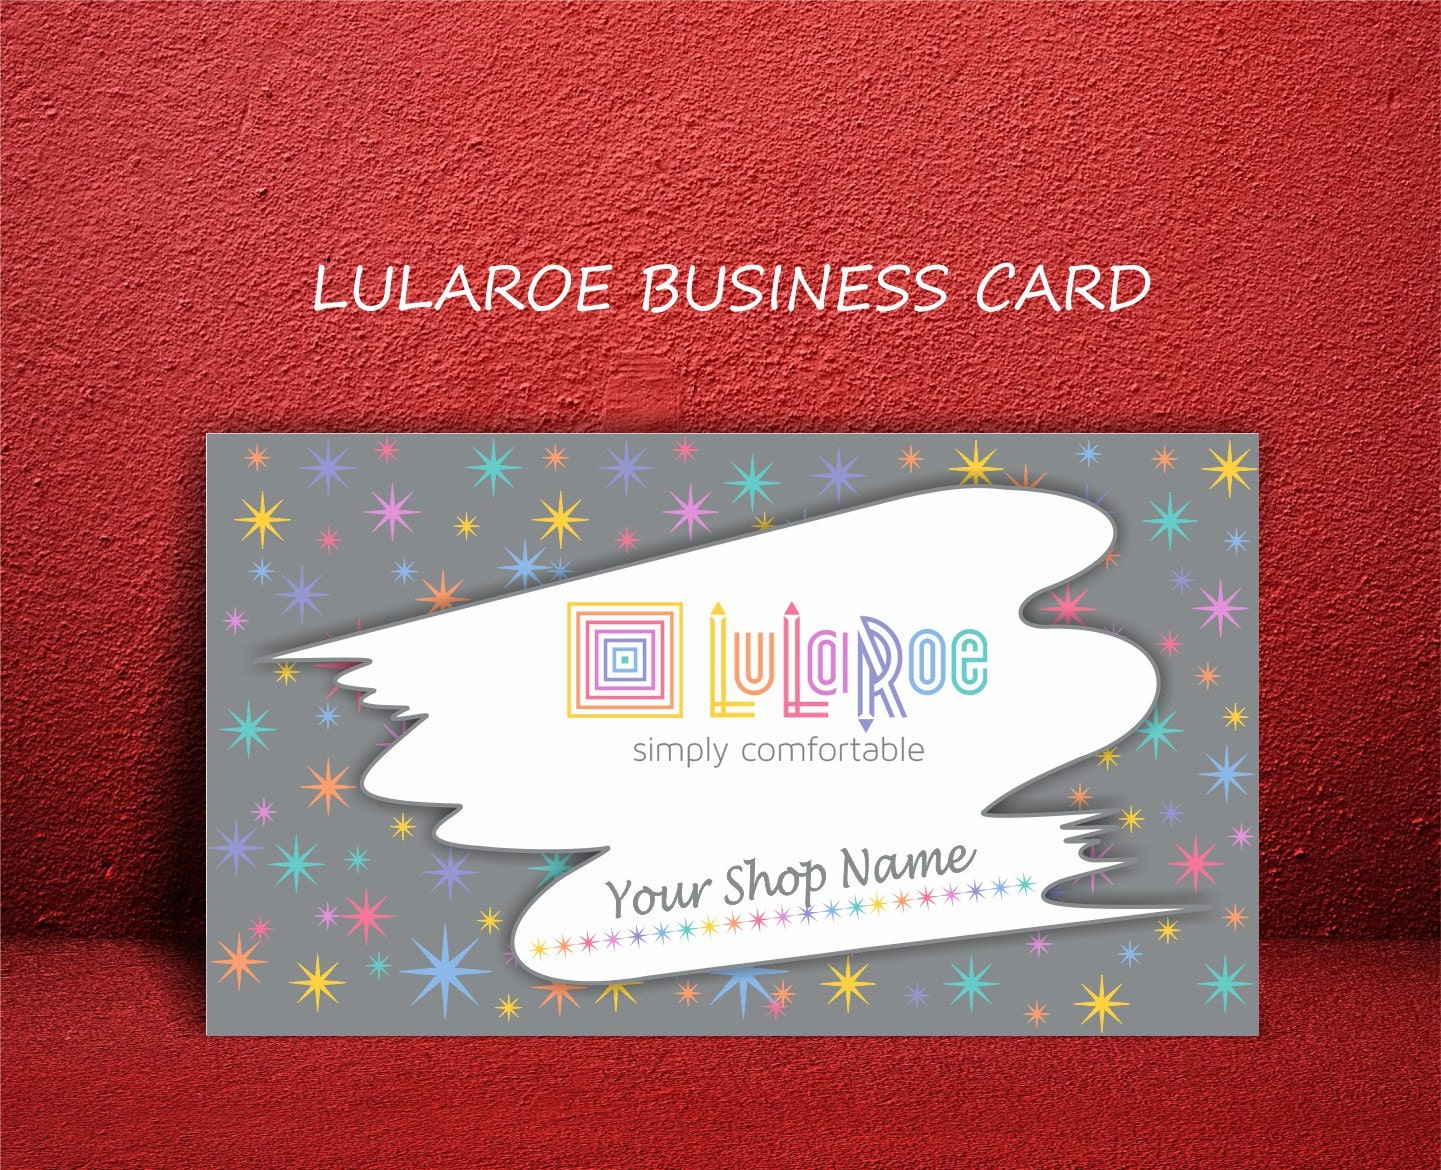 Lularoe business cards personalized digital printable by for Etsy lularoe business cards